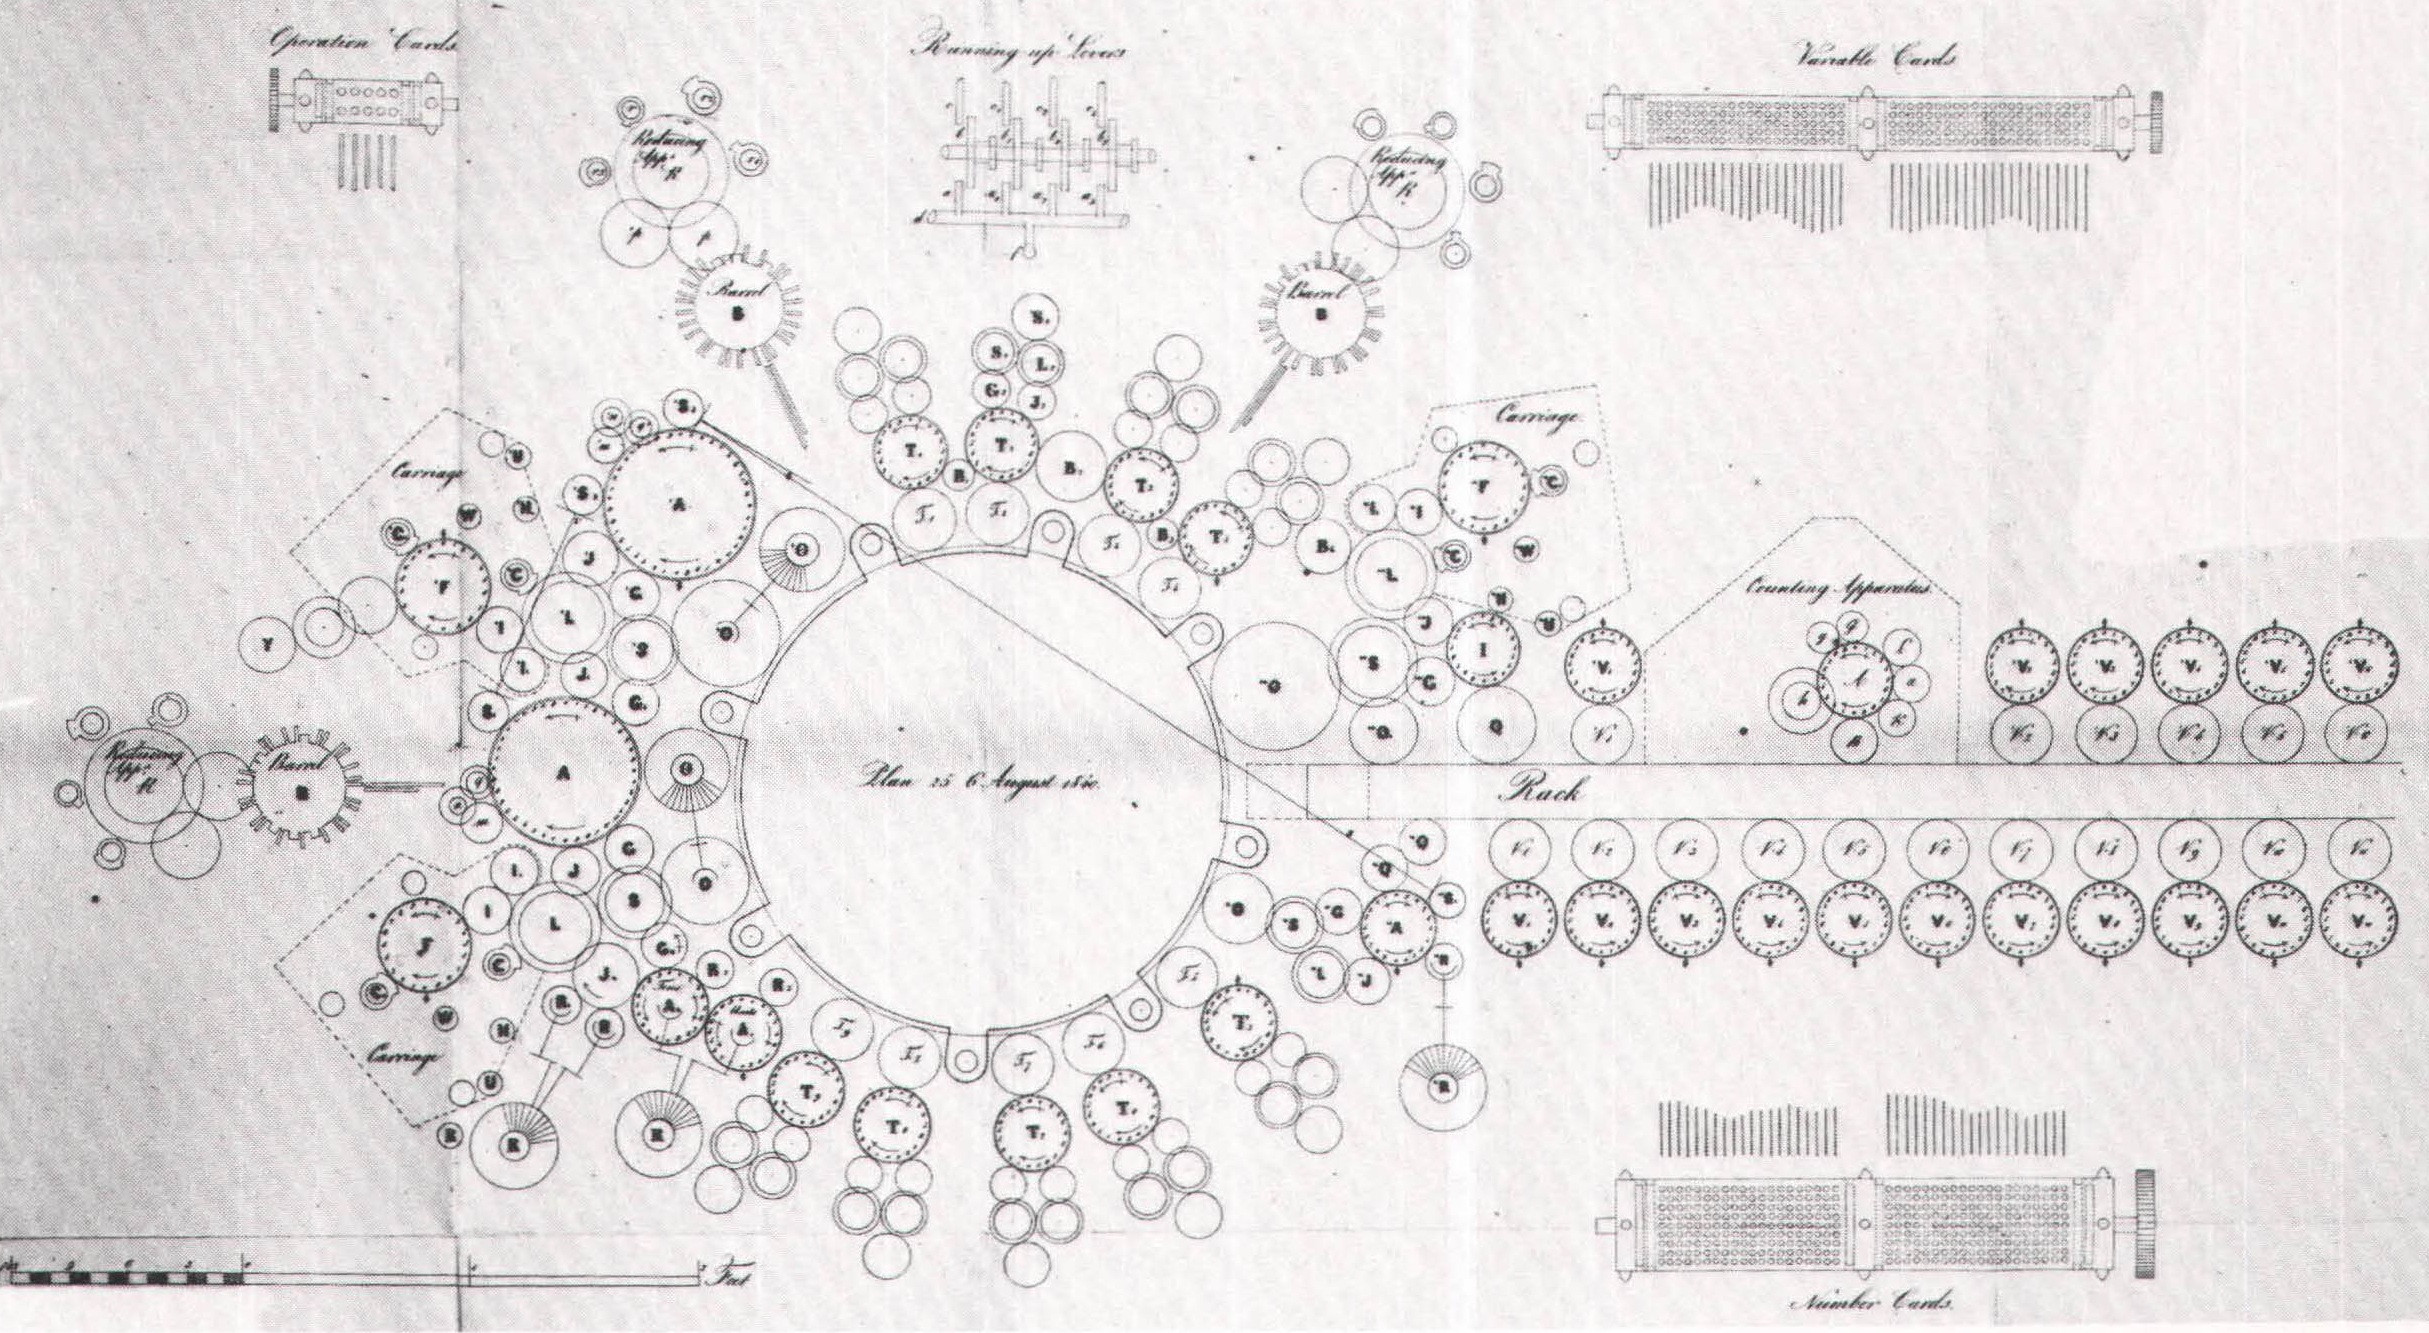 Mechanical Read How Drawings